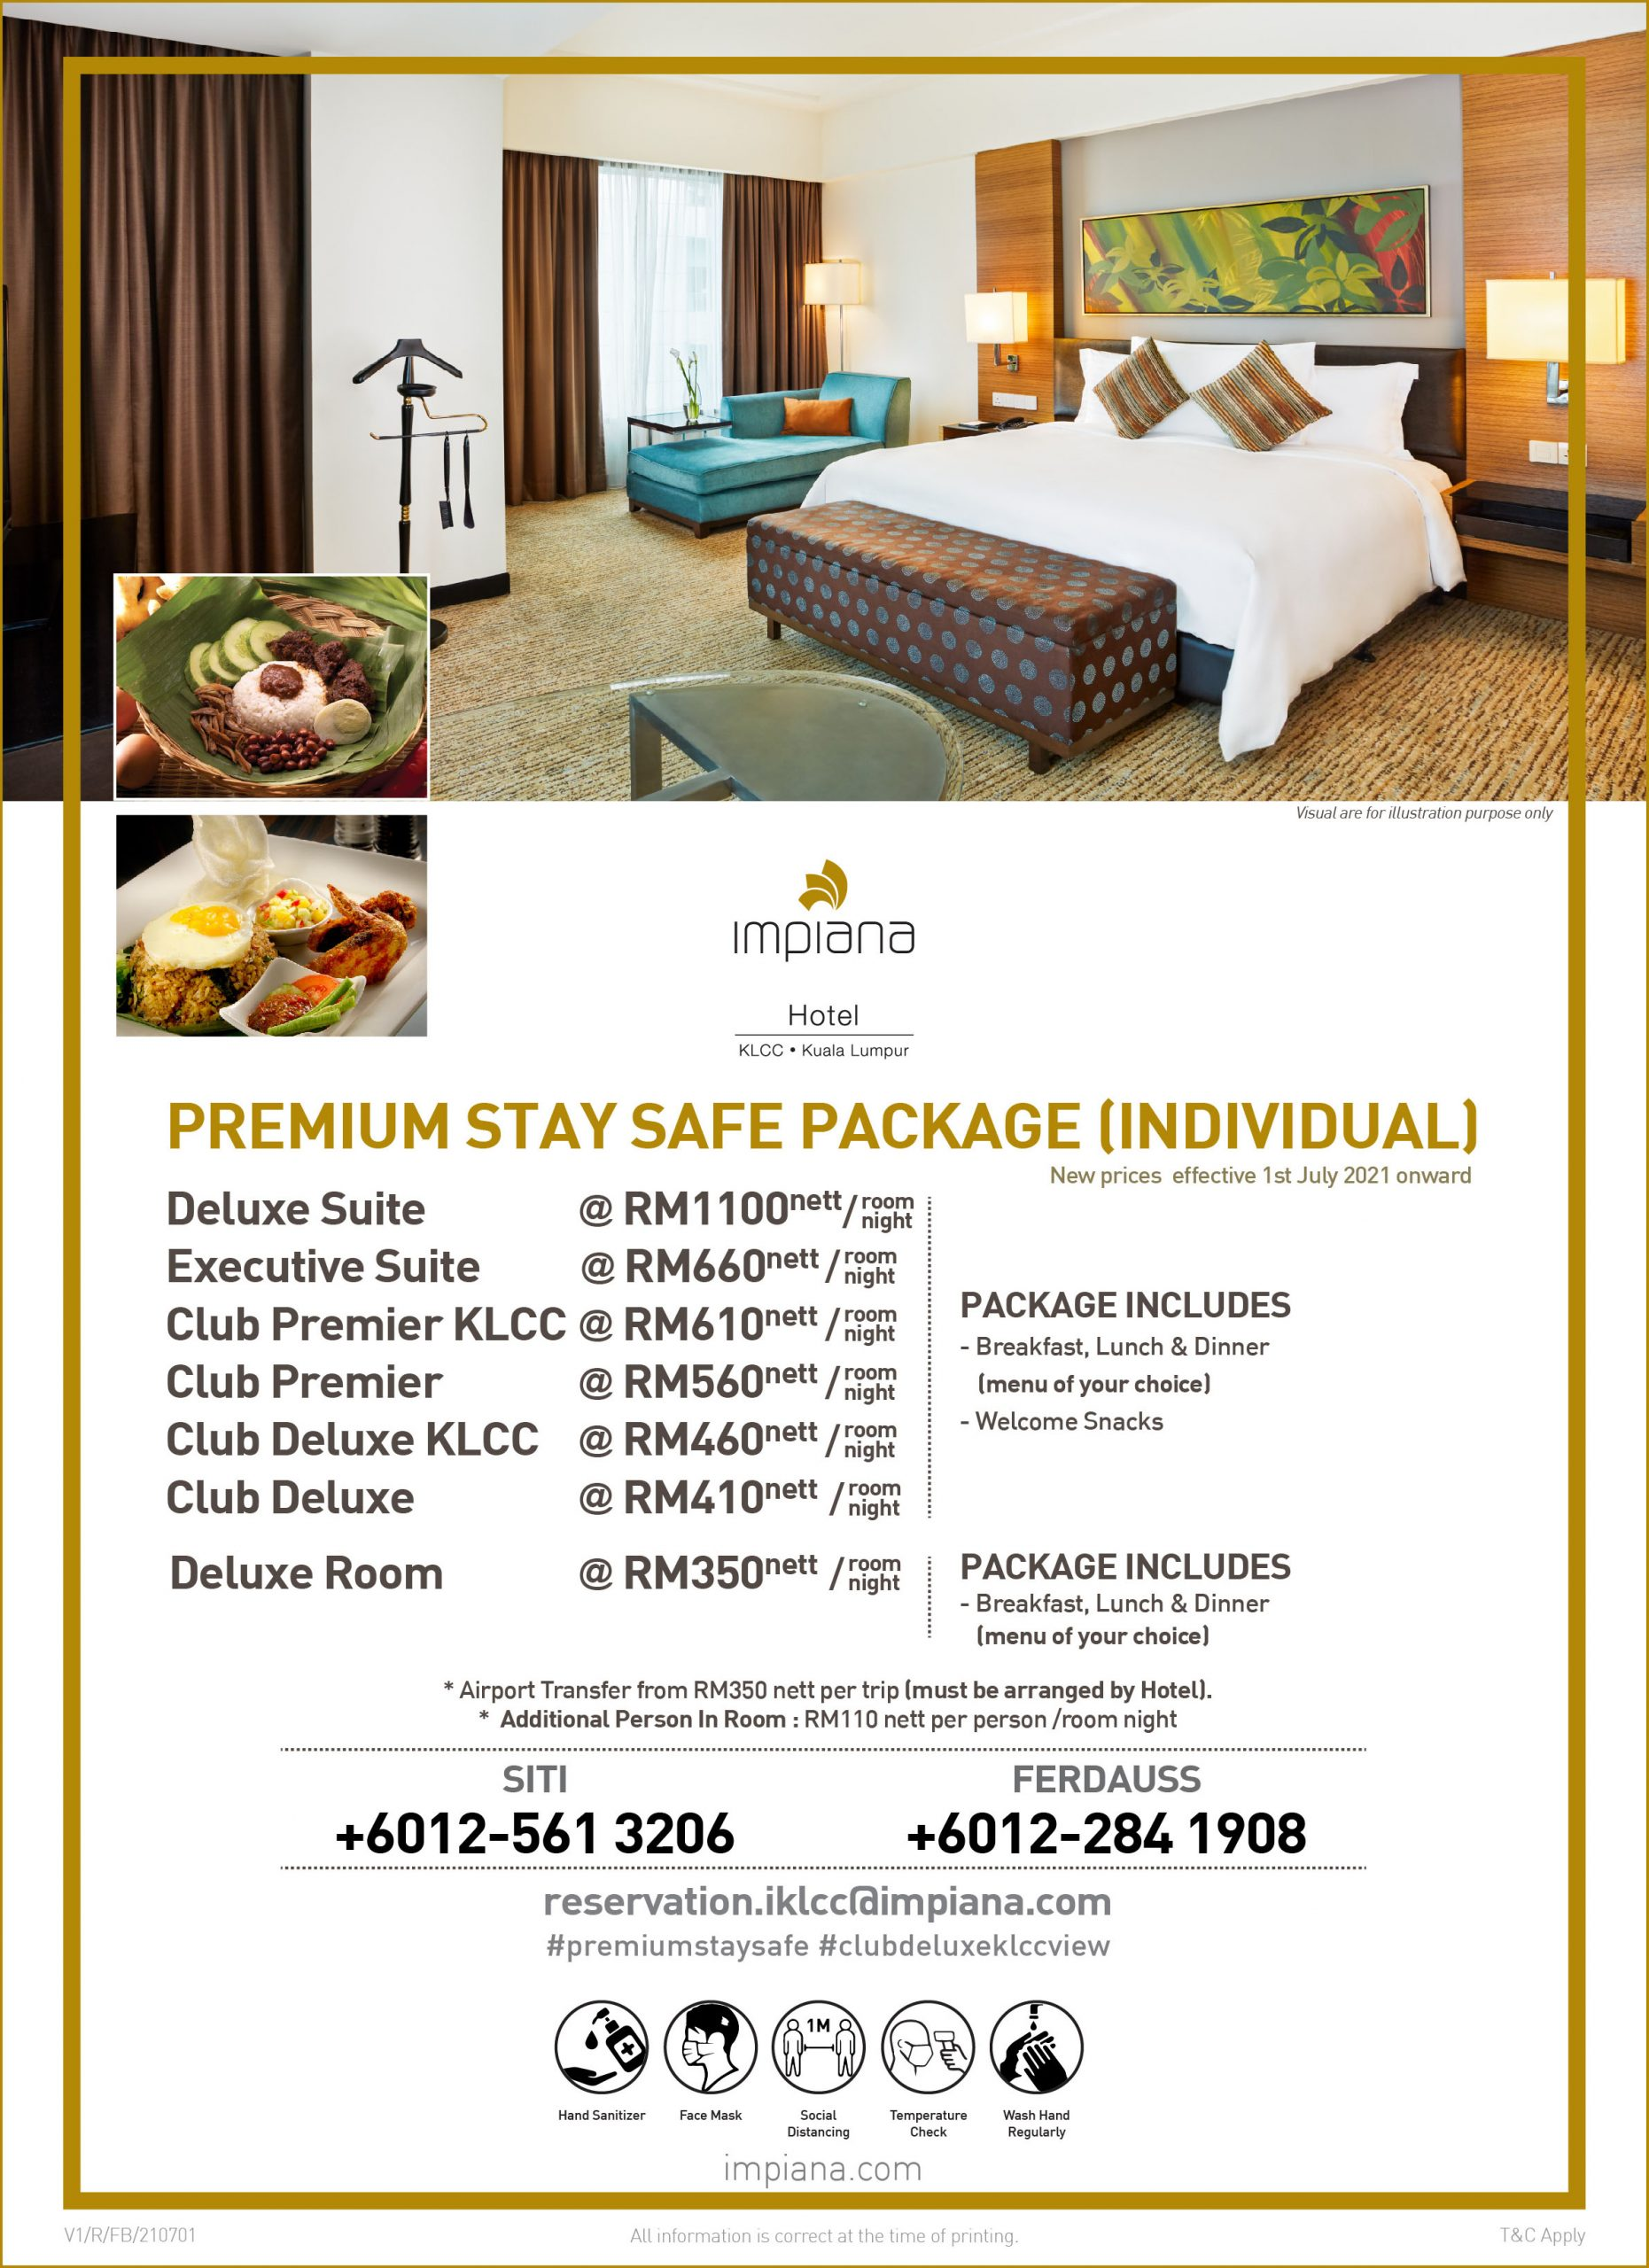 Premium Stay Safe Package (Individual)